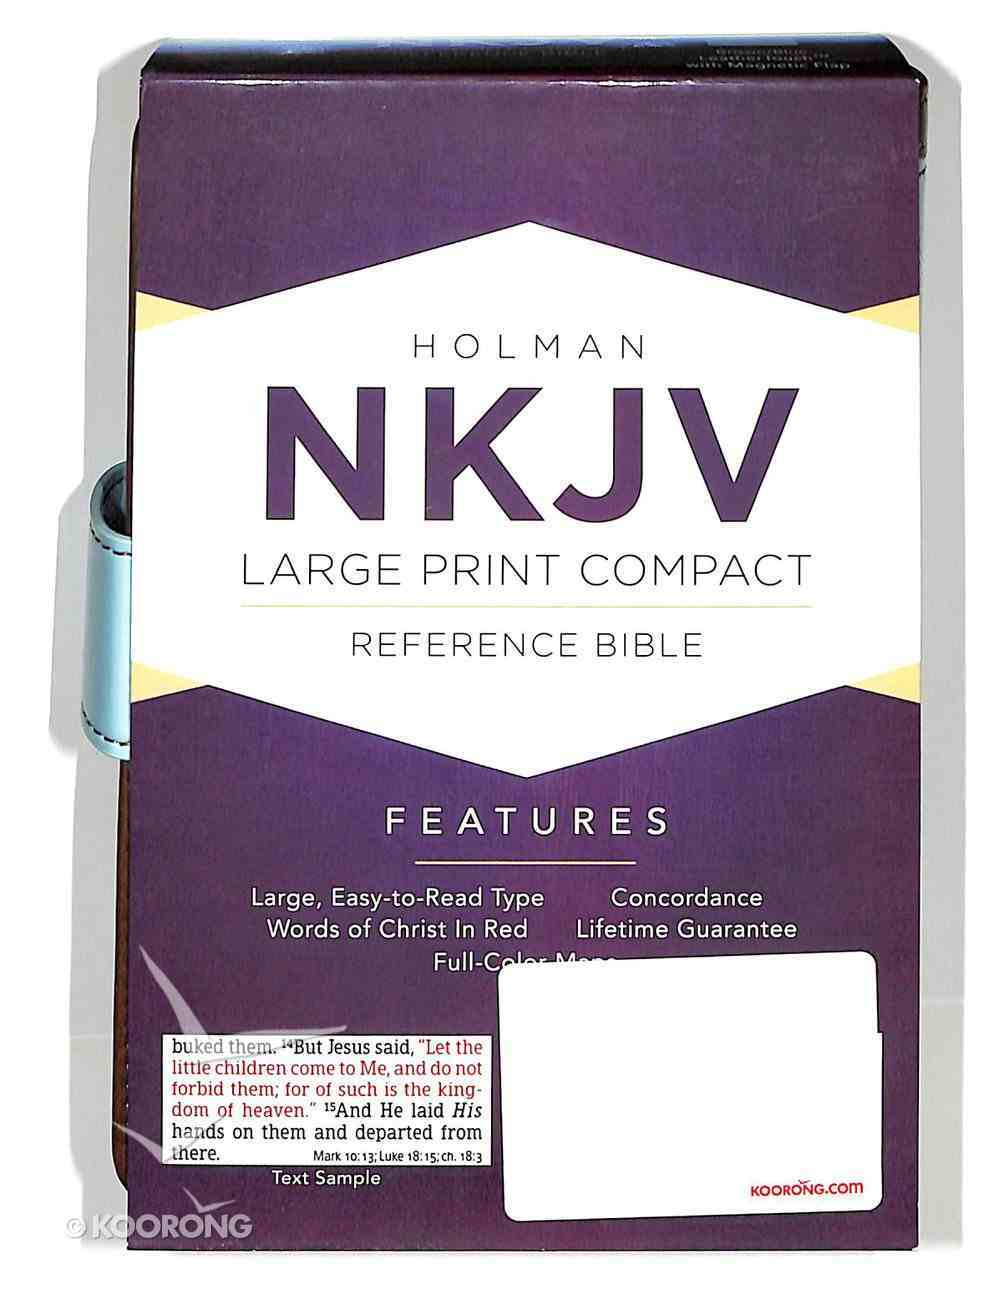 NKJV Large Print Compact Reference Bible With Magnetic Flap Brown/Blue Leathertouch Premium Imitation Leather